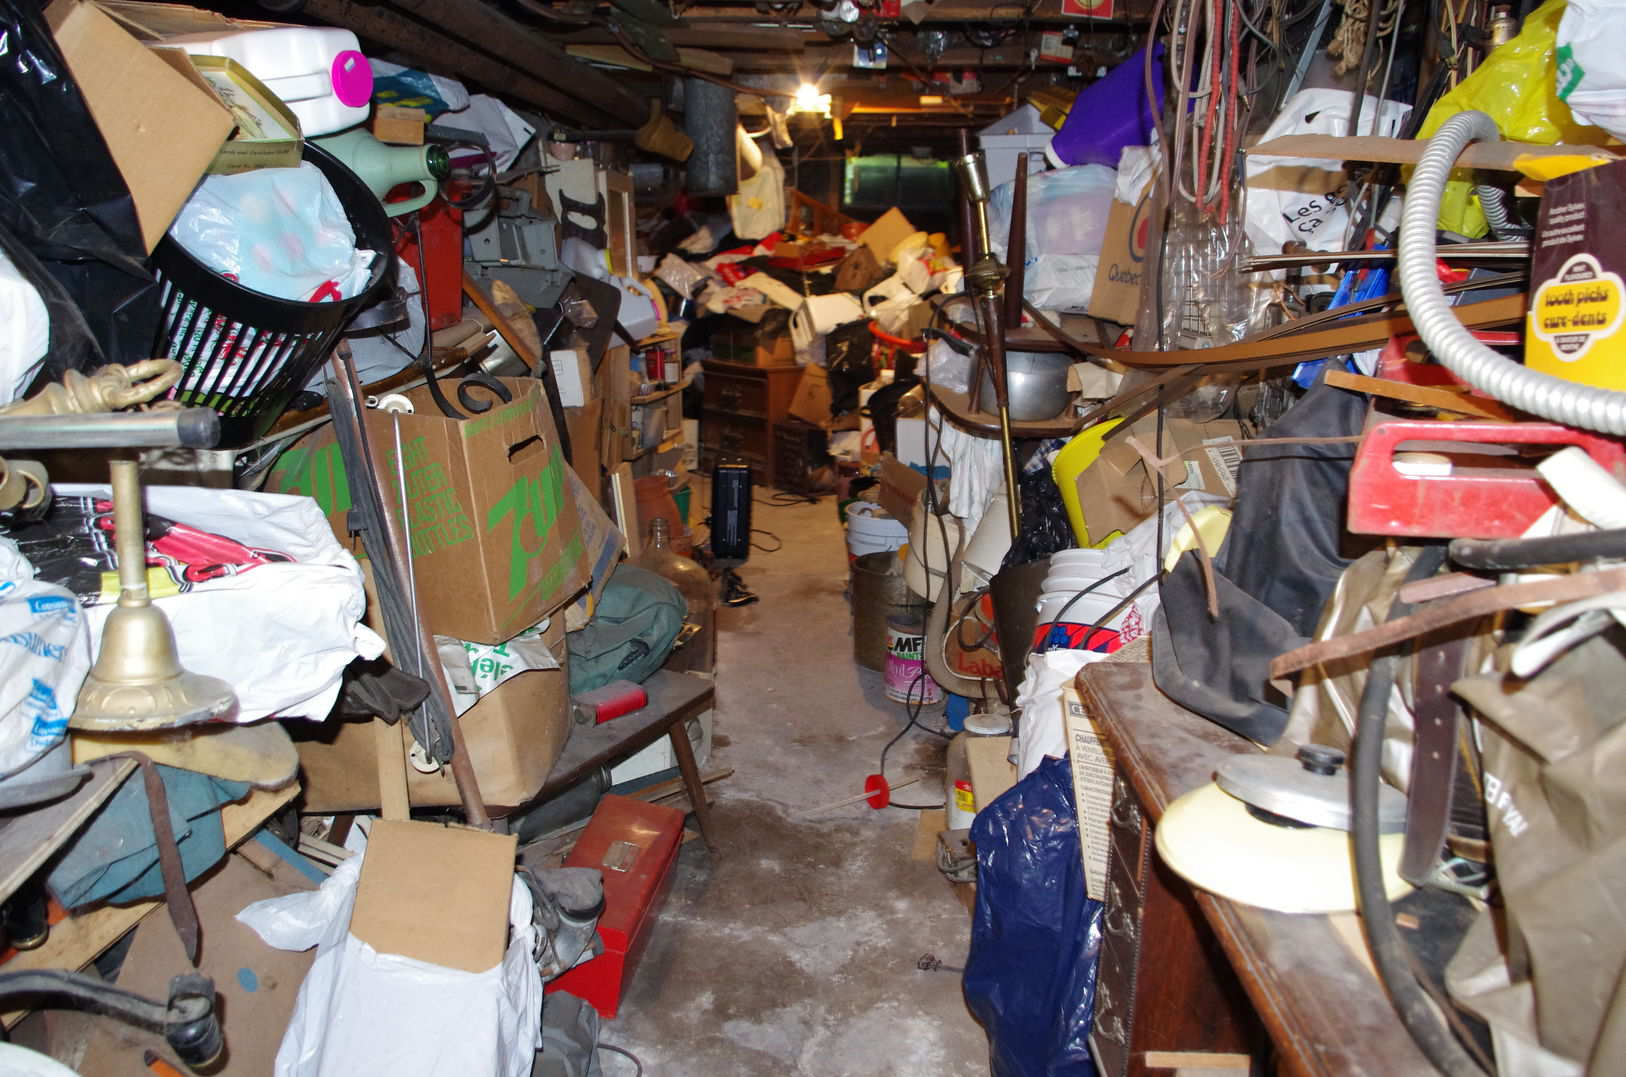 Monmouth County Junk Hauling Services